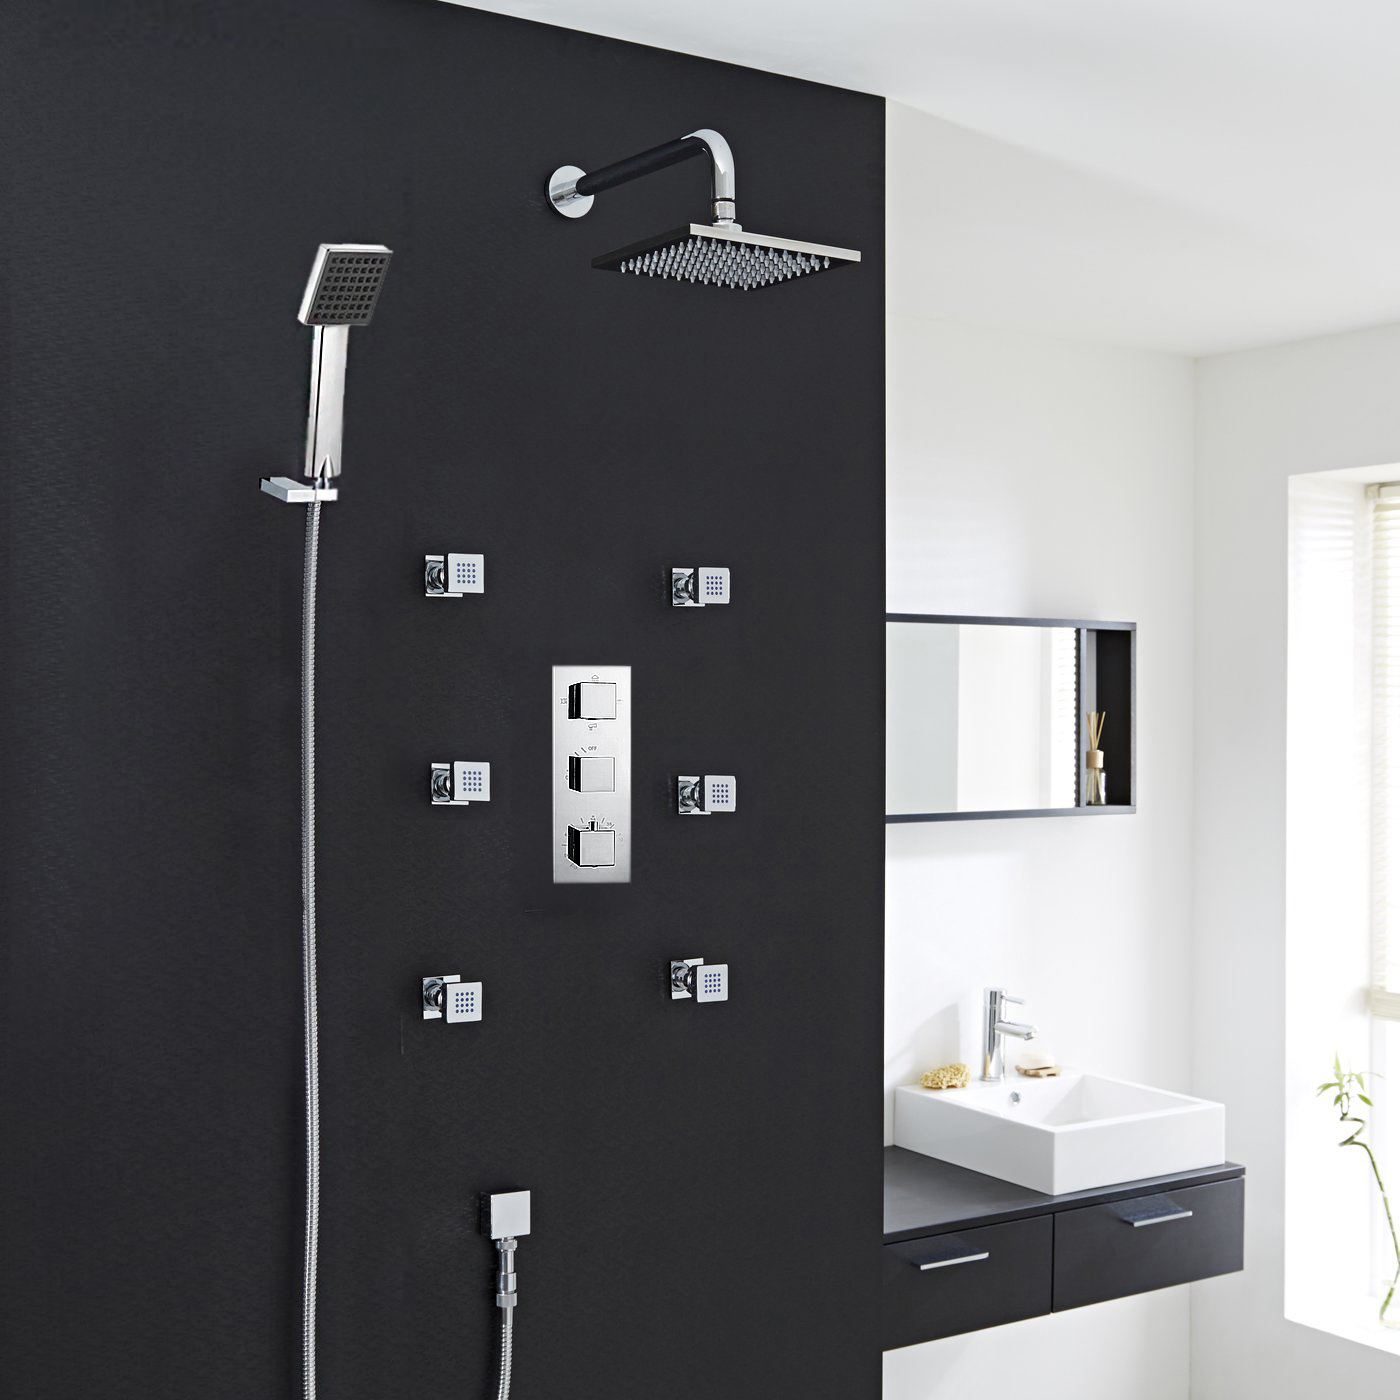 Fontana Wall ceiling shower head shower body jets hand shower with ...